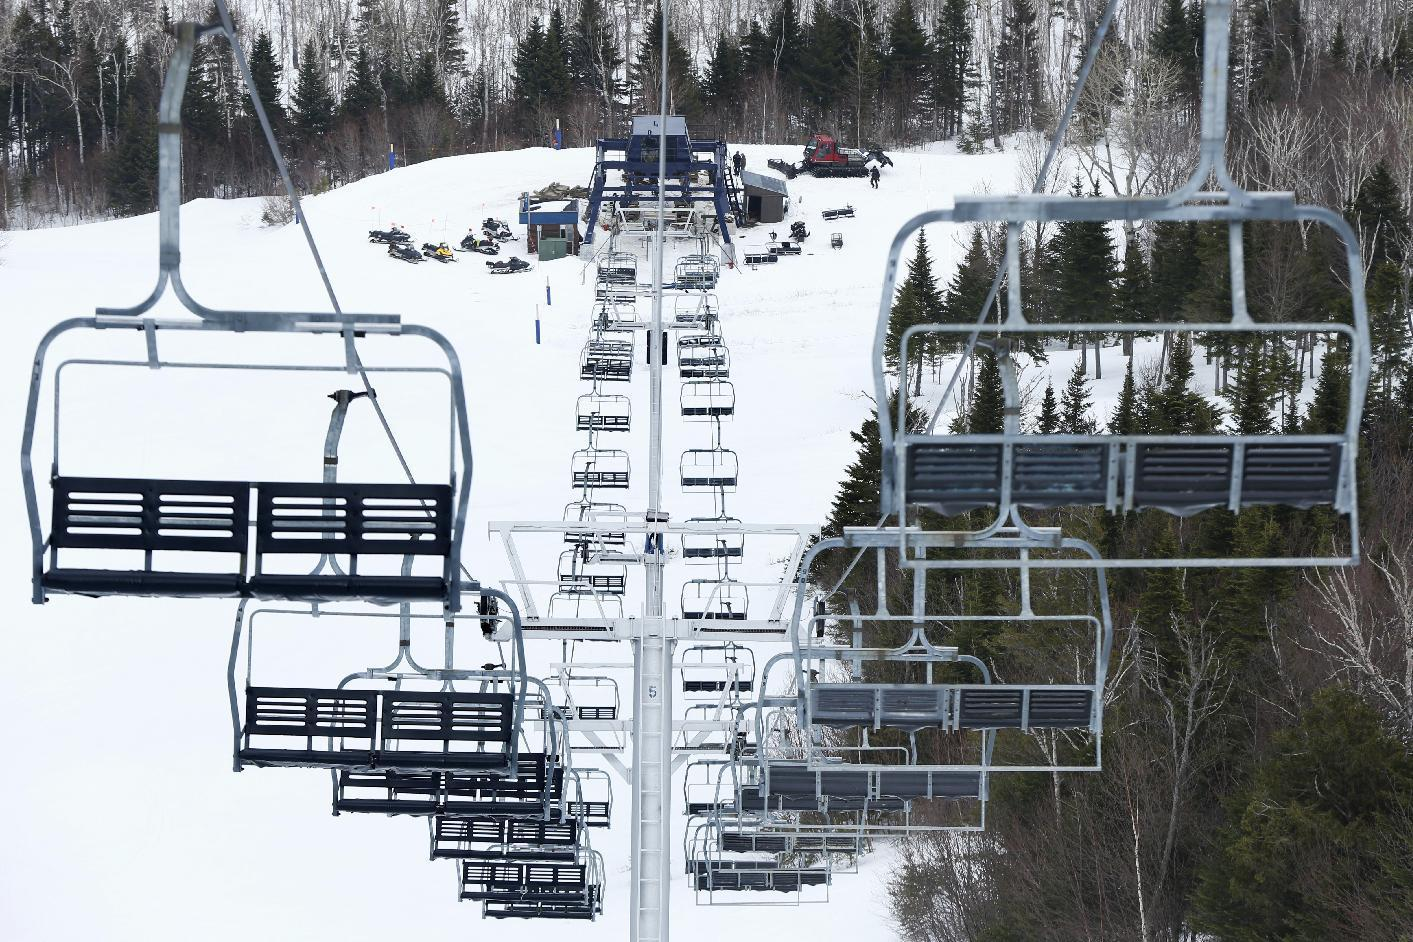 Maine ski resort focuses on safety after chairlift accidents